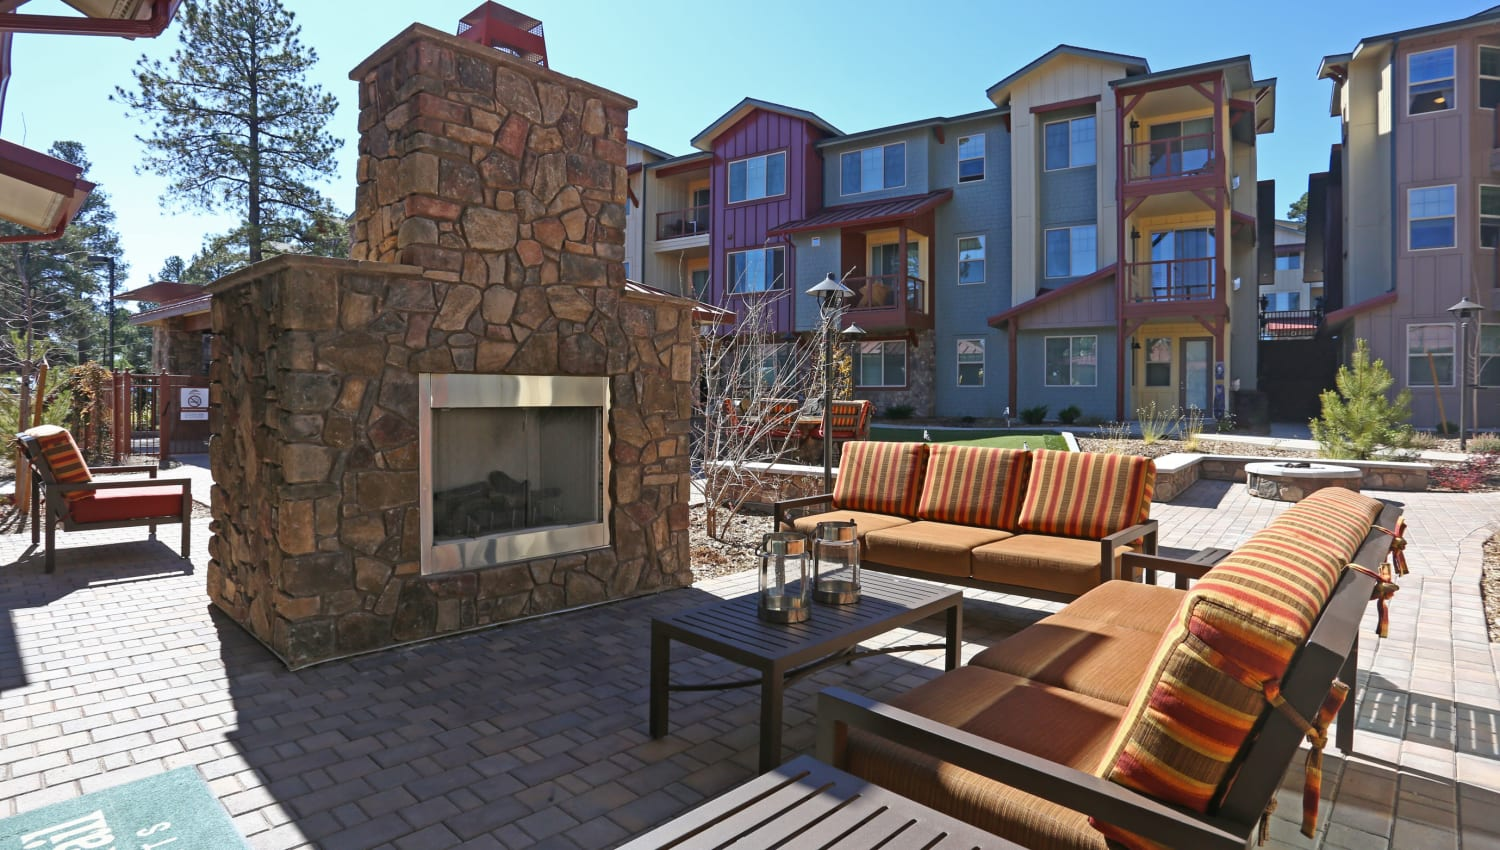 Outdoor fireplace at Mountain Trail in Flagstaff, Arizona